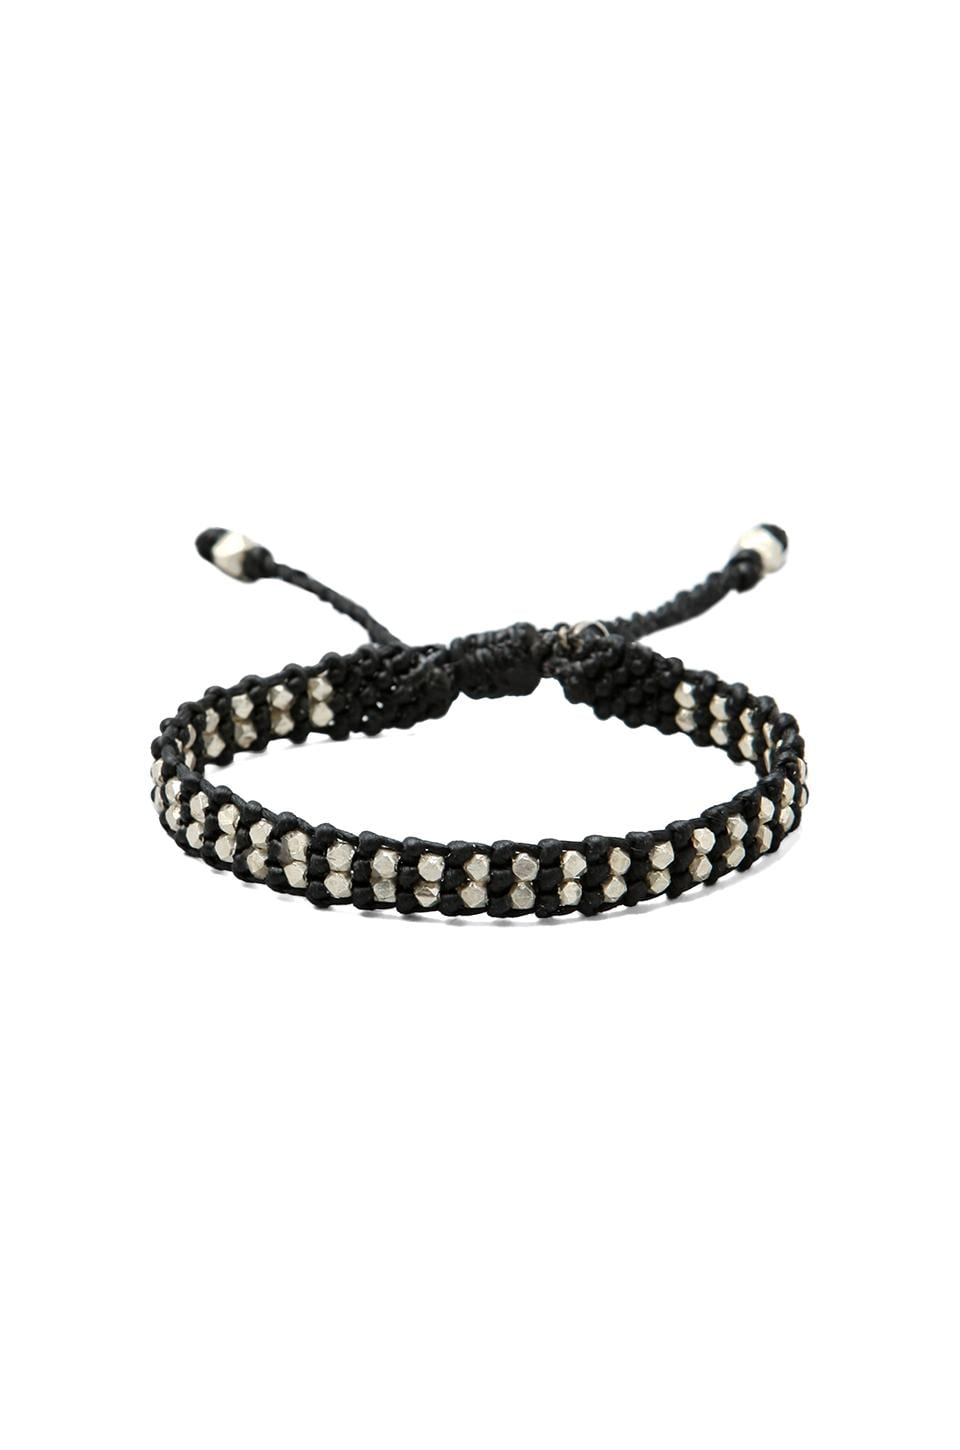 M.Cohen Double Faceted Bead Bead Bracelet in Black